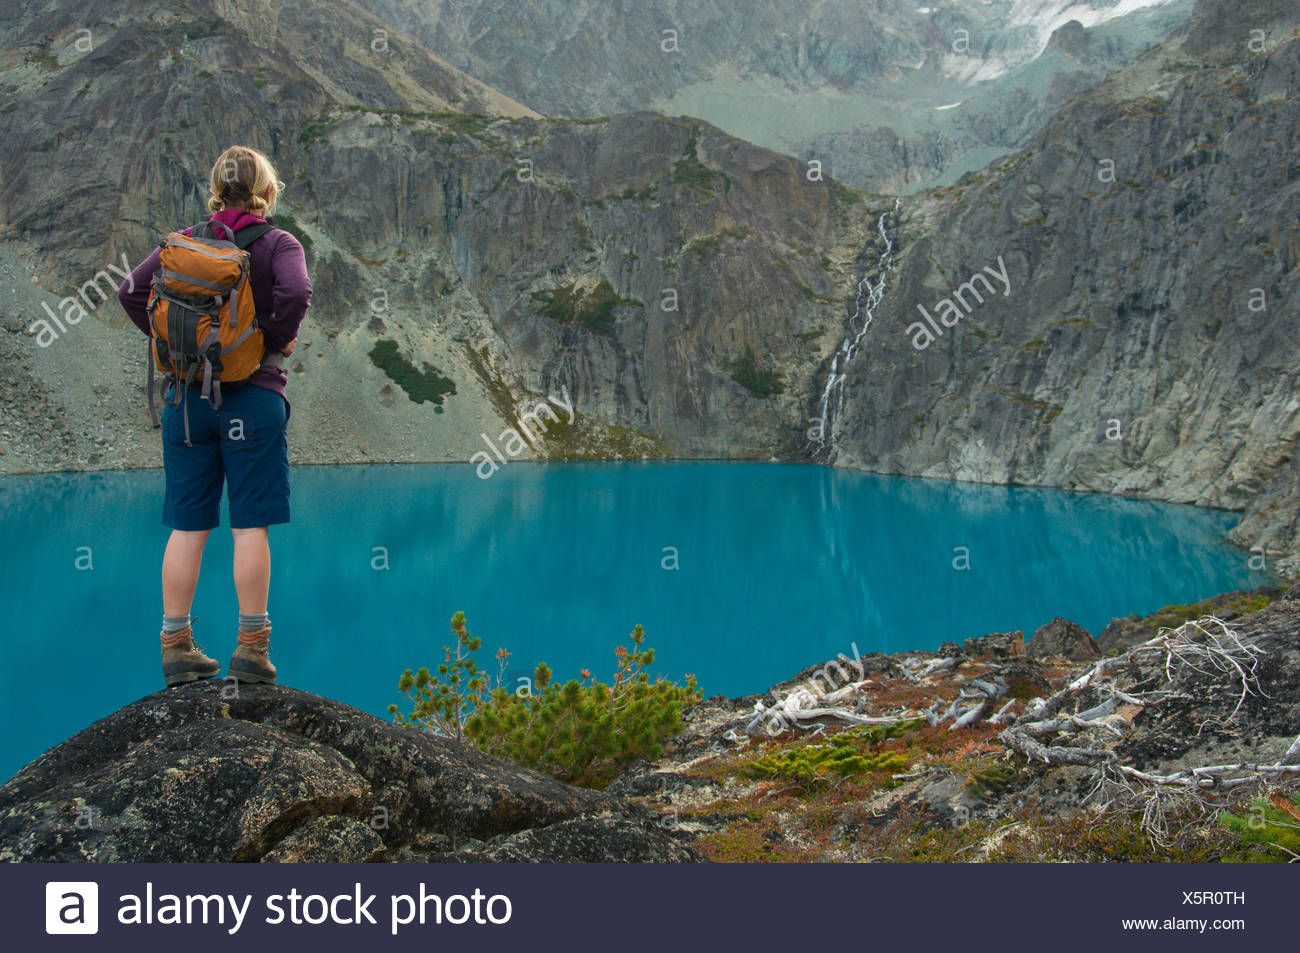 Hiking in the Coast Mountains, BC - Stock Image